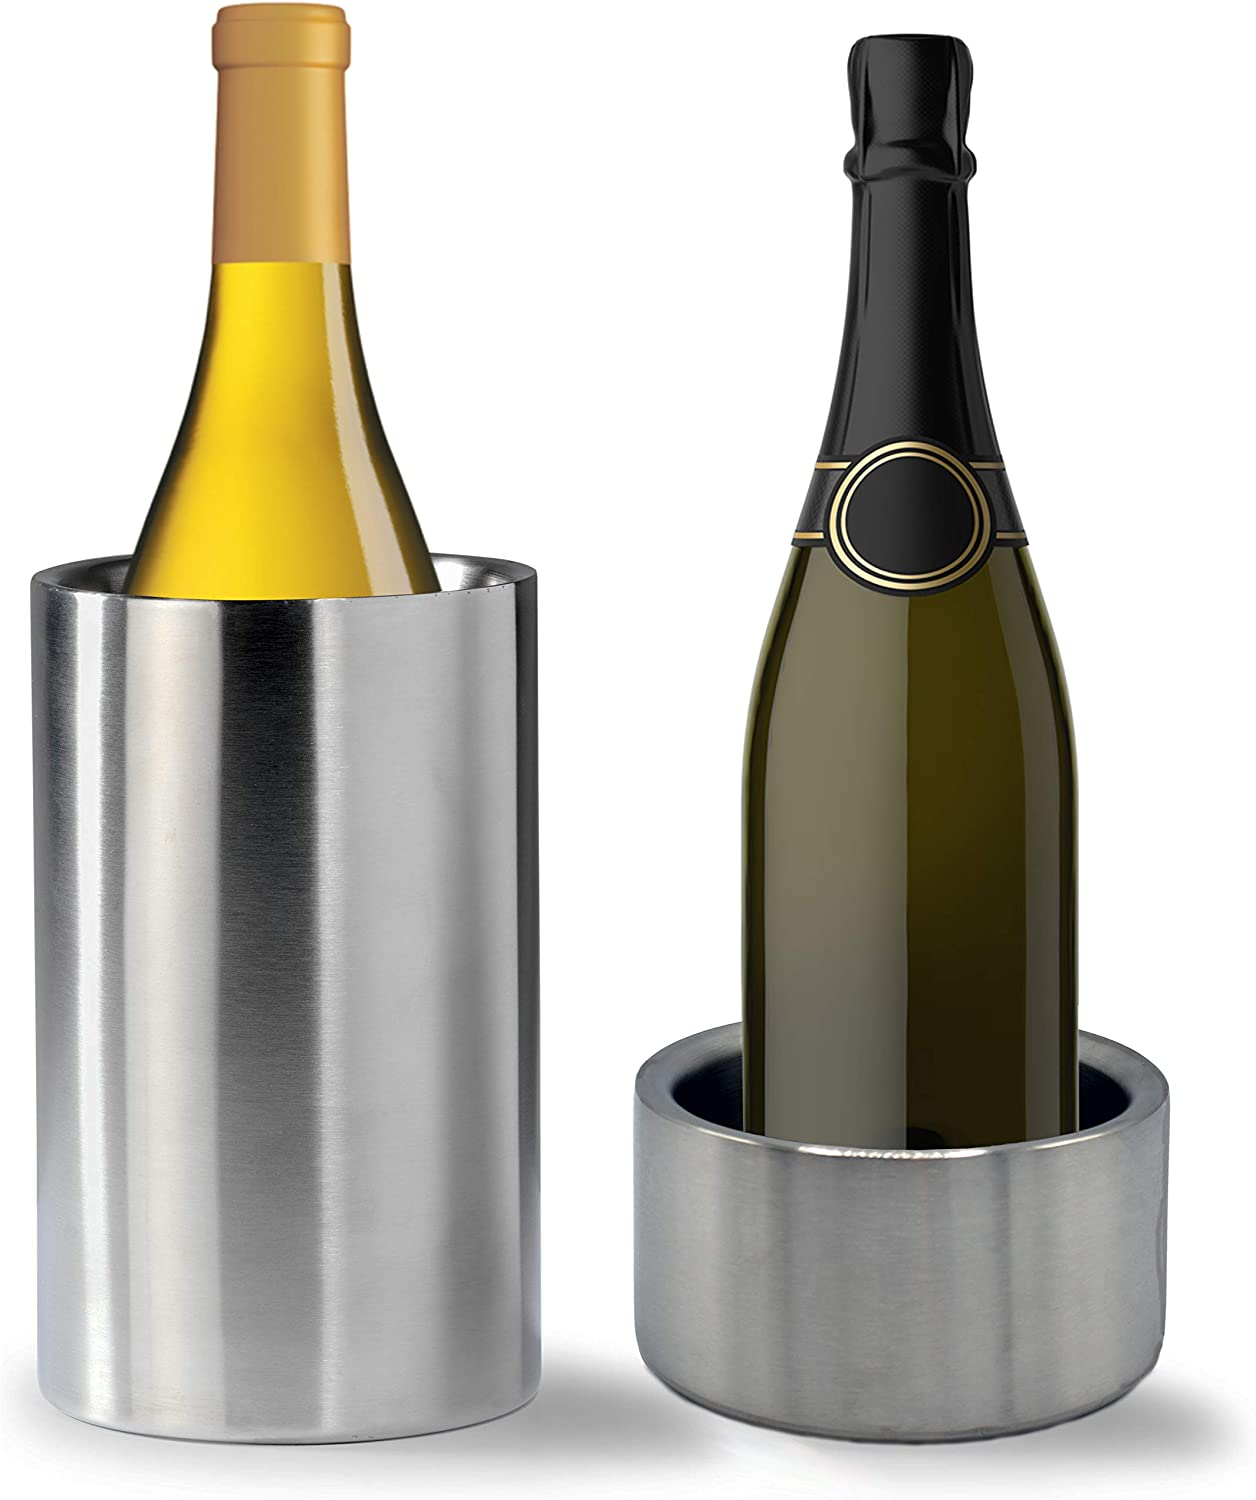 Tiger Chef Wine Bottle Chiller Double Cooler Set: Wall Super beauty product restock outlet quality top Stainless